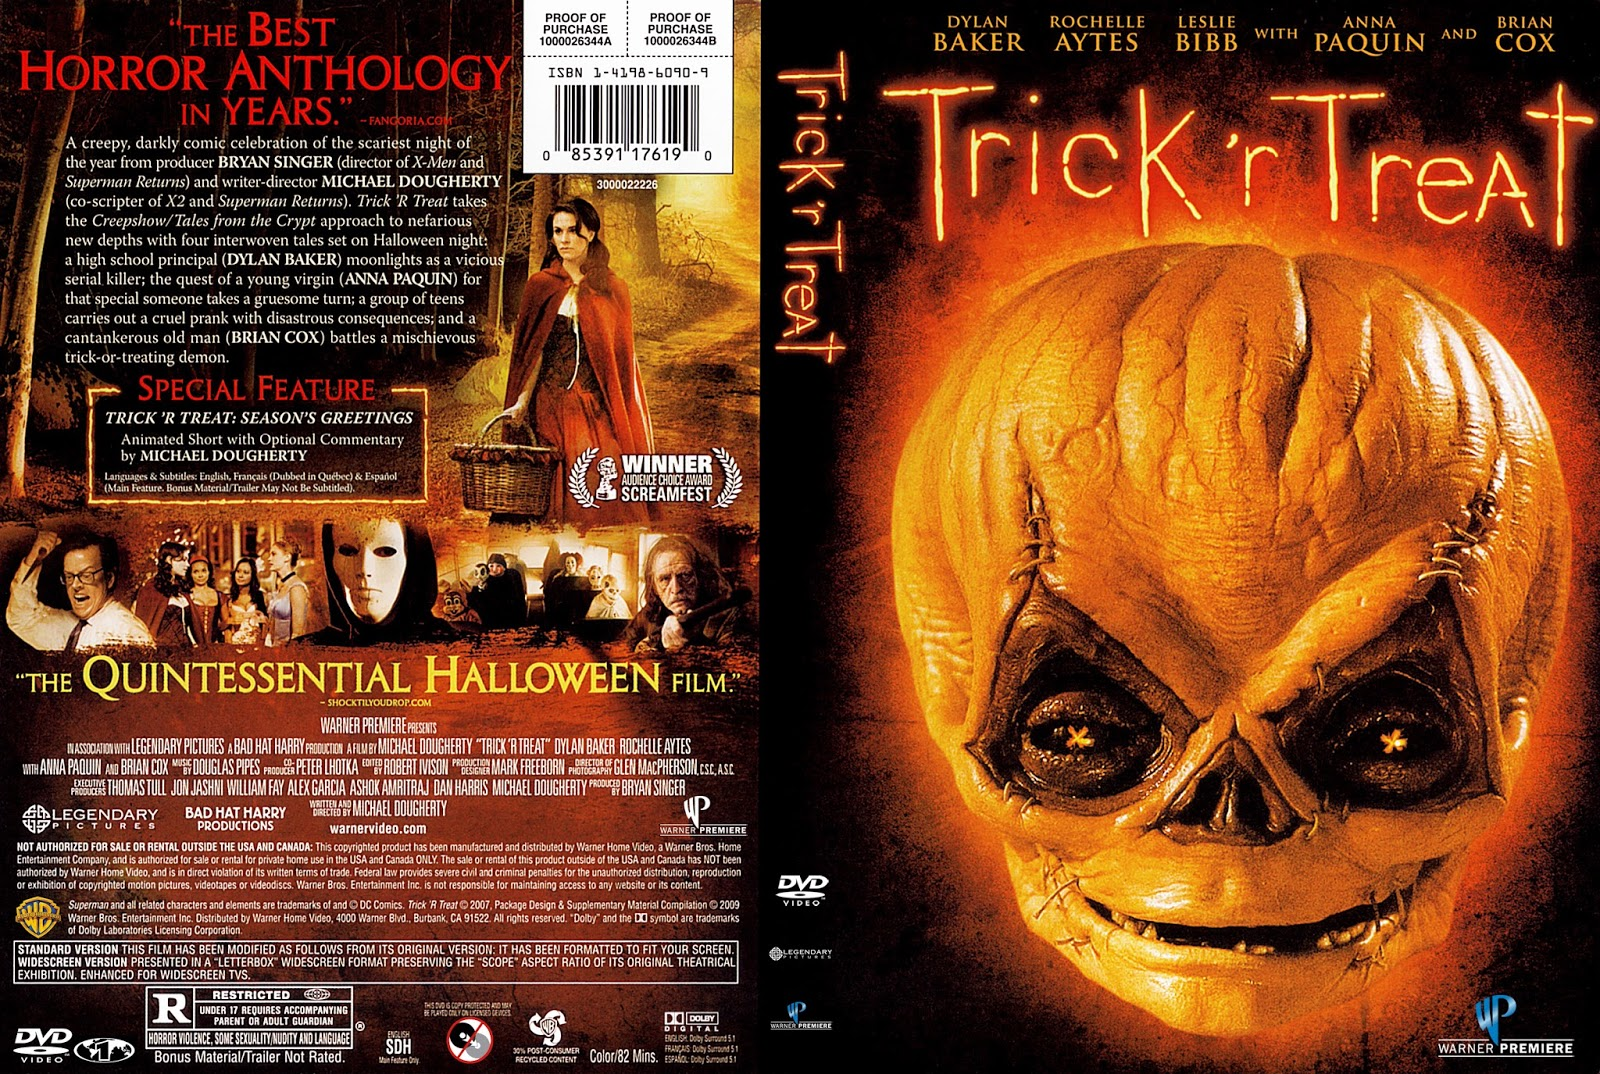 The Horrors of Halloween: TRICK 'R TREAT (2007) Sales Sheet, VHS ...